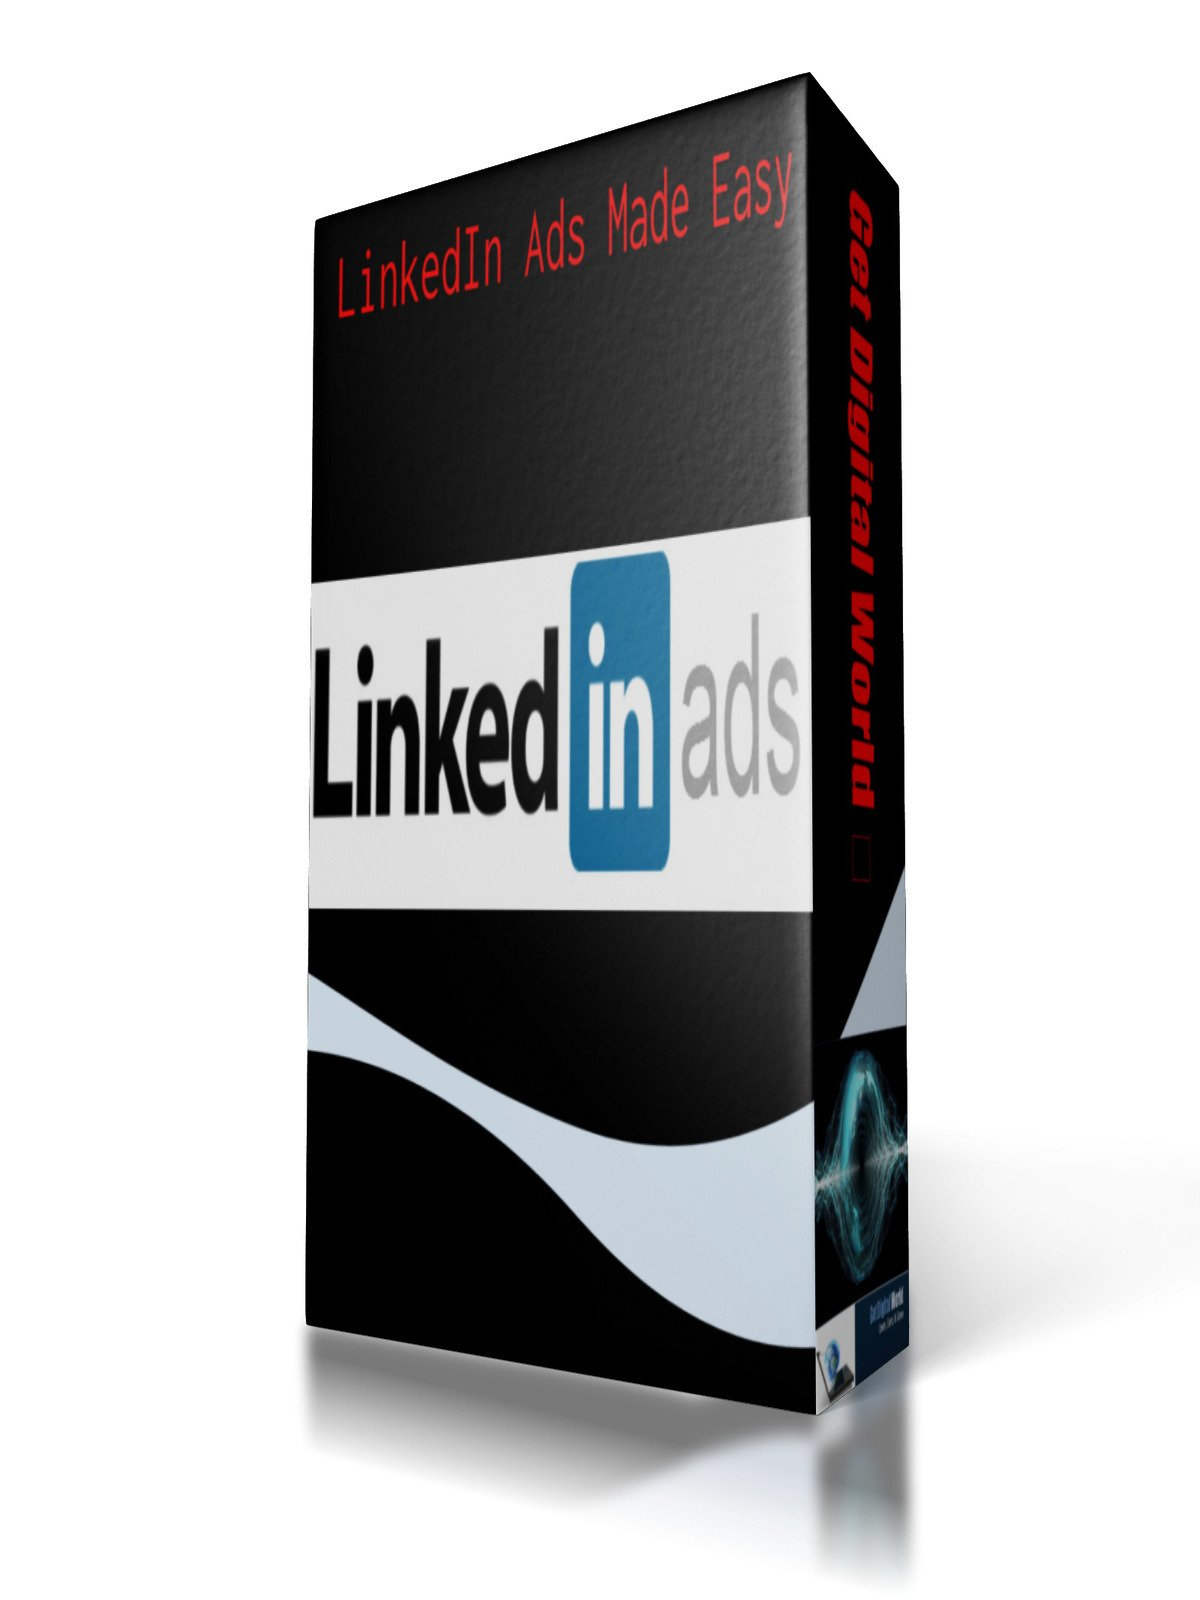 LinkedIn Ads Made Easy The Complete Course on Amazon Prime Instant Video UK